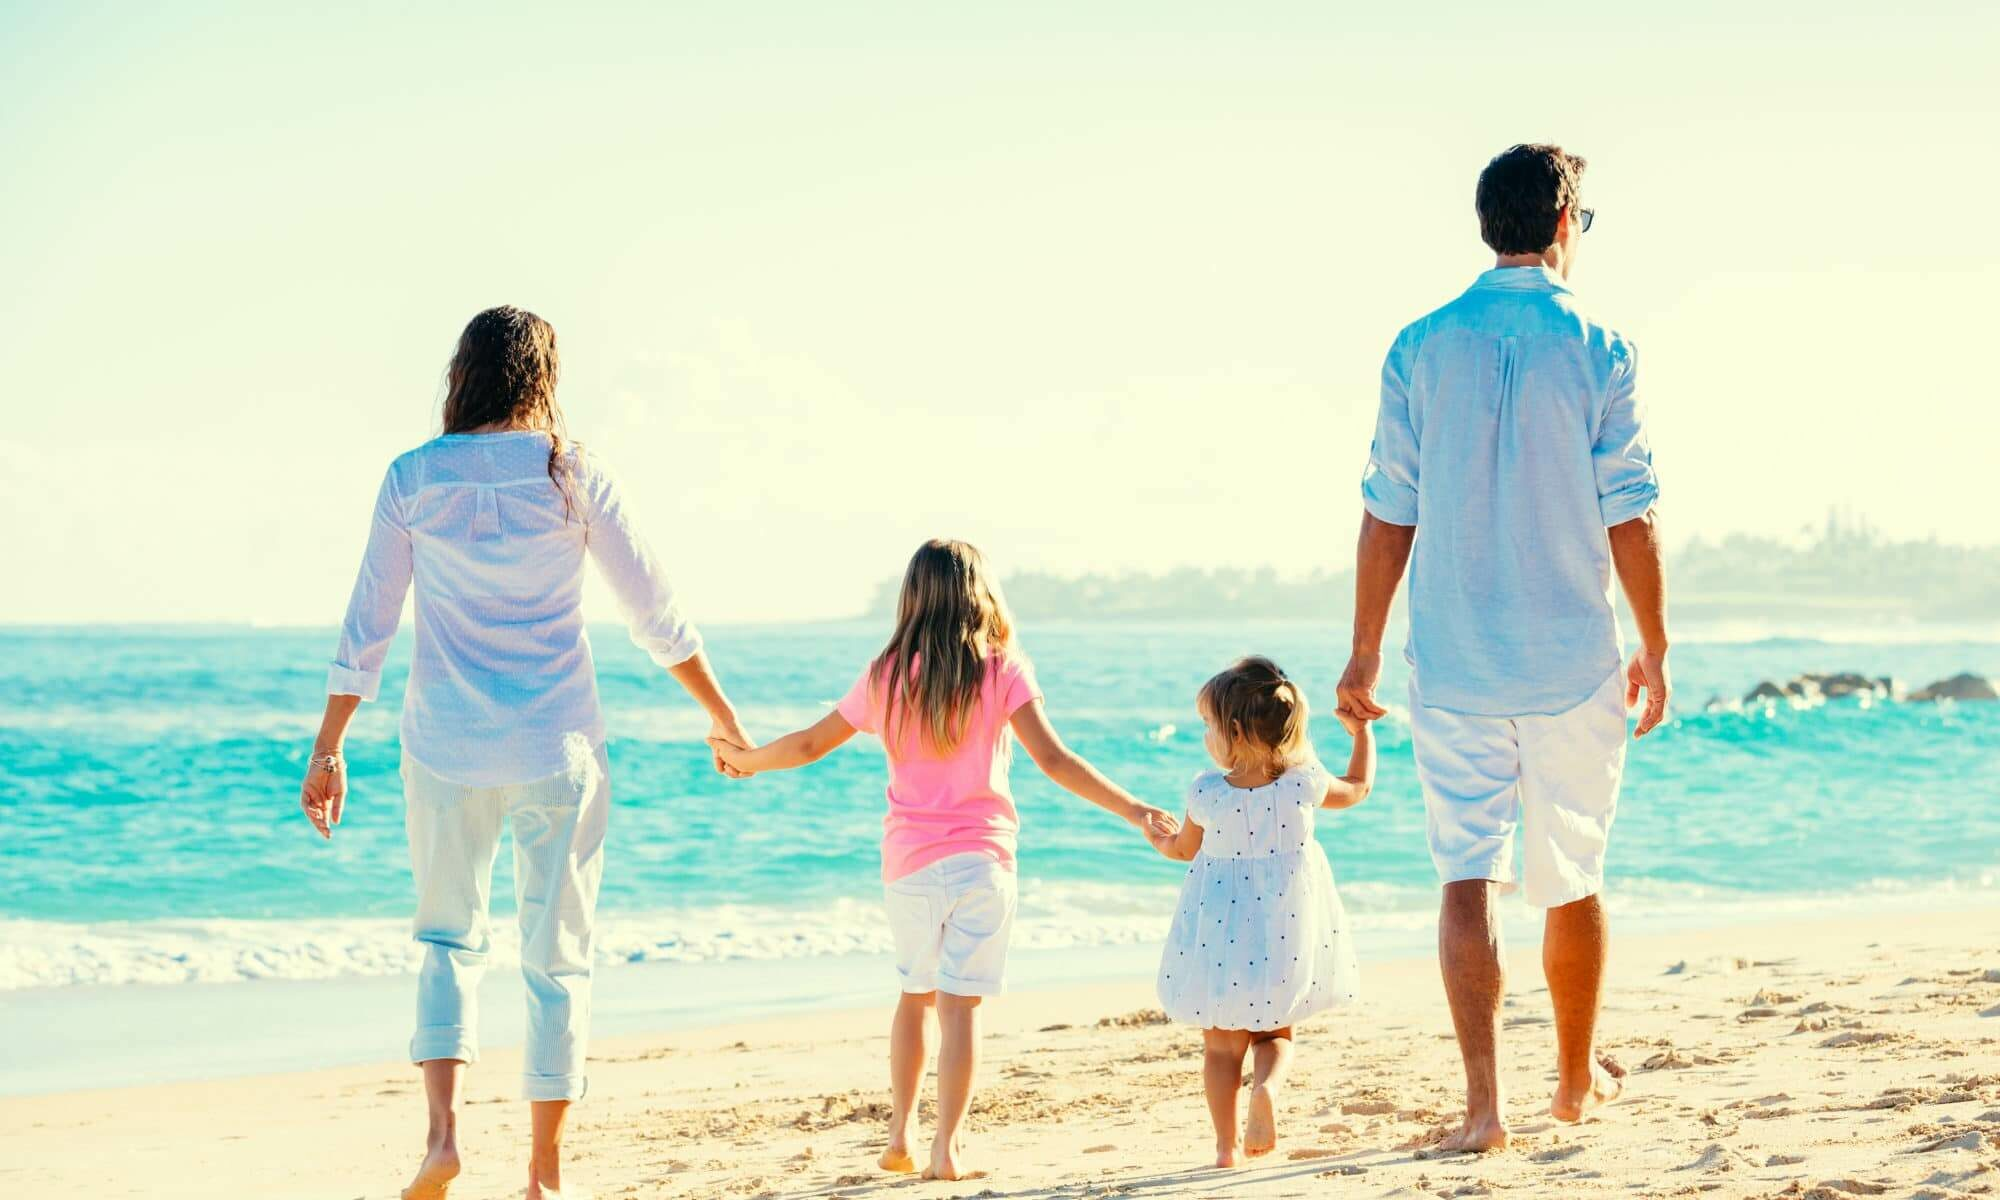 Living in The Bahamas as an Expat: Cost of Living, Safety, Pros & Cons